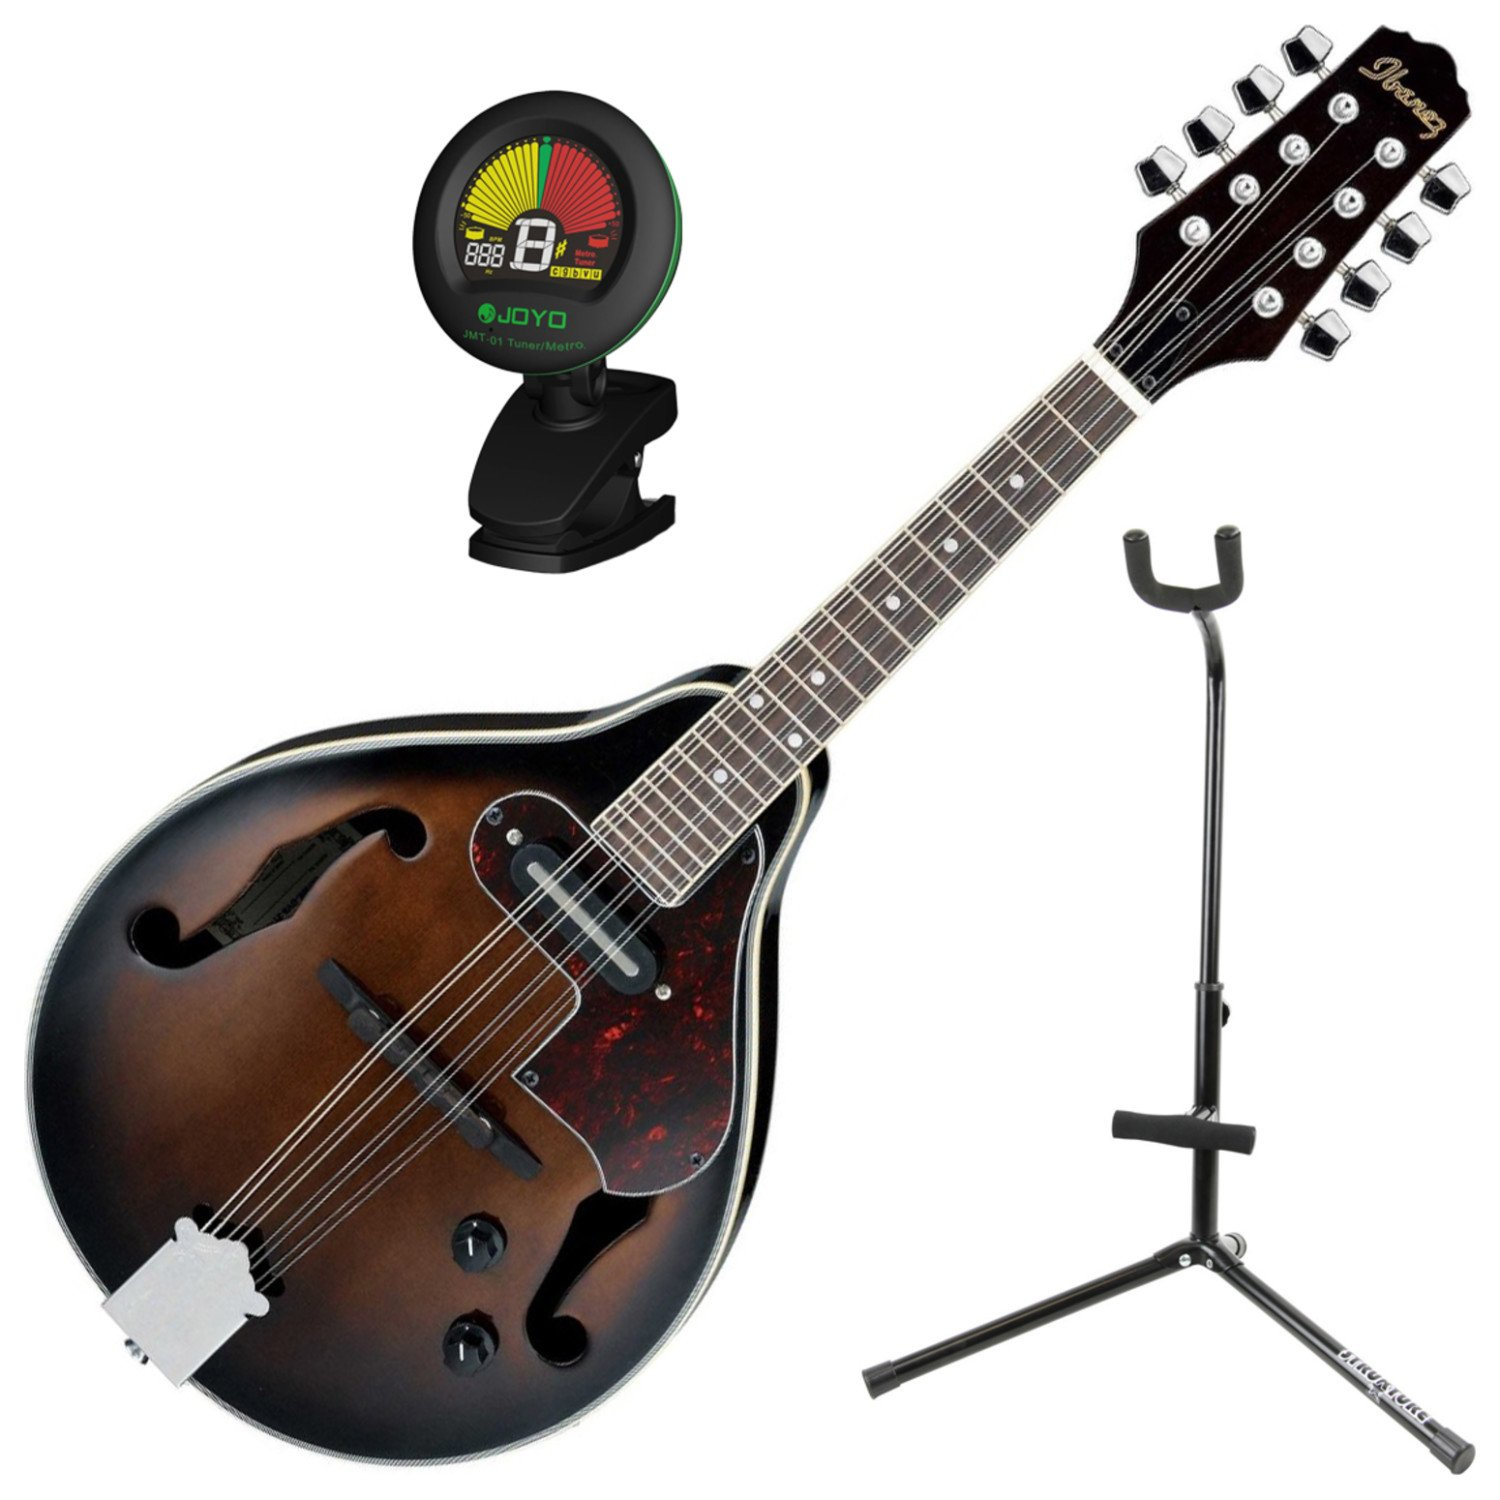 Ibanez M510EDVS A Style Electric Acoustic Mandolin Dark Violin Sunburst w/ Stand and Tuner by Ibanez (Image #1)